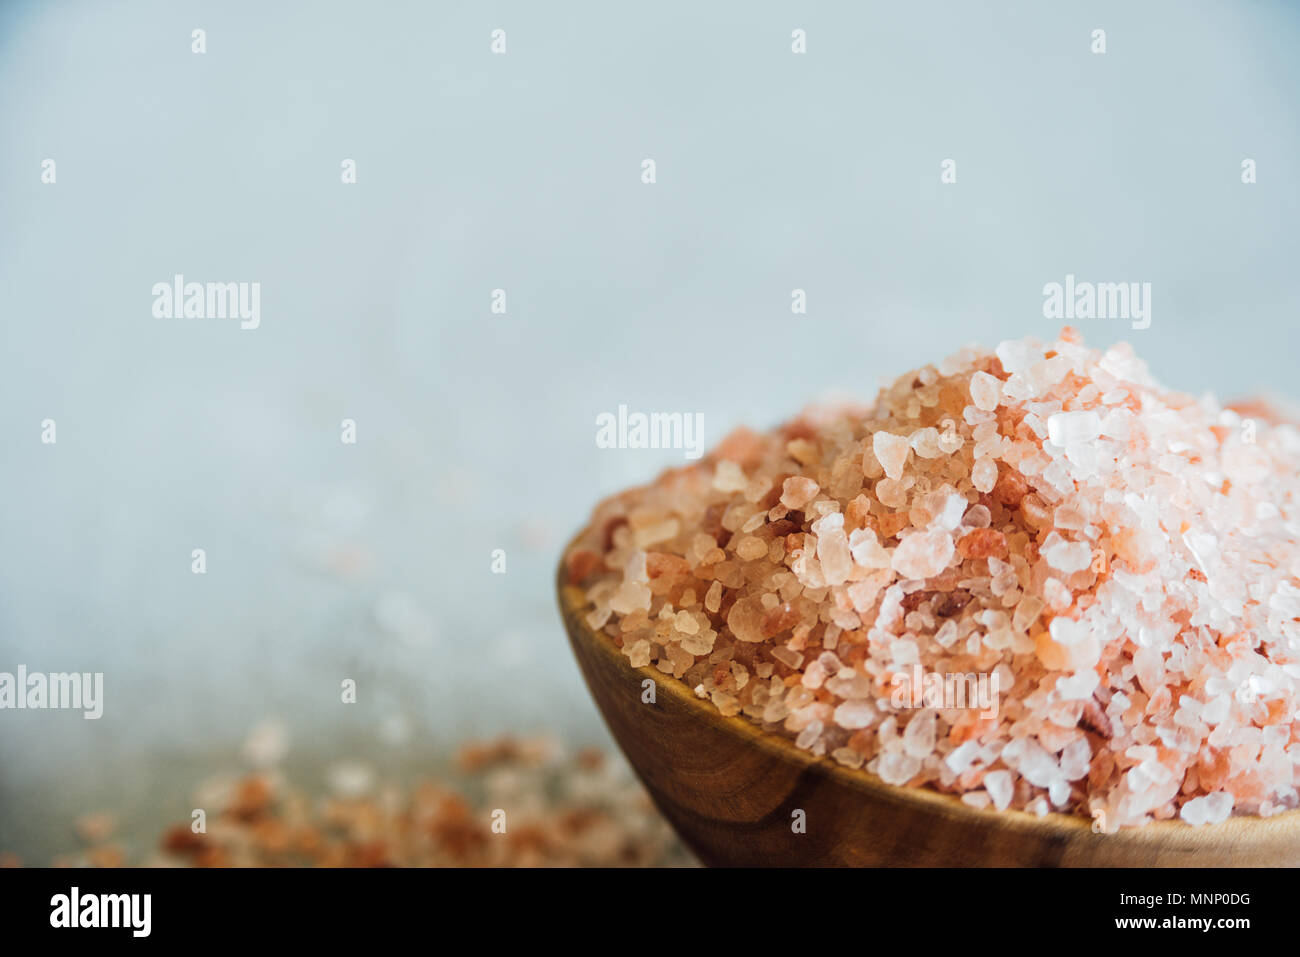 Wooden bowl with pink salt on neutral background - Stock Image